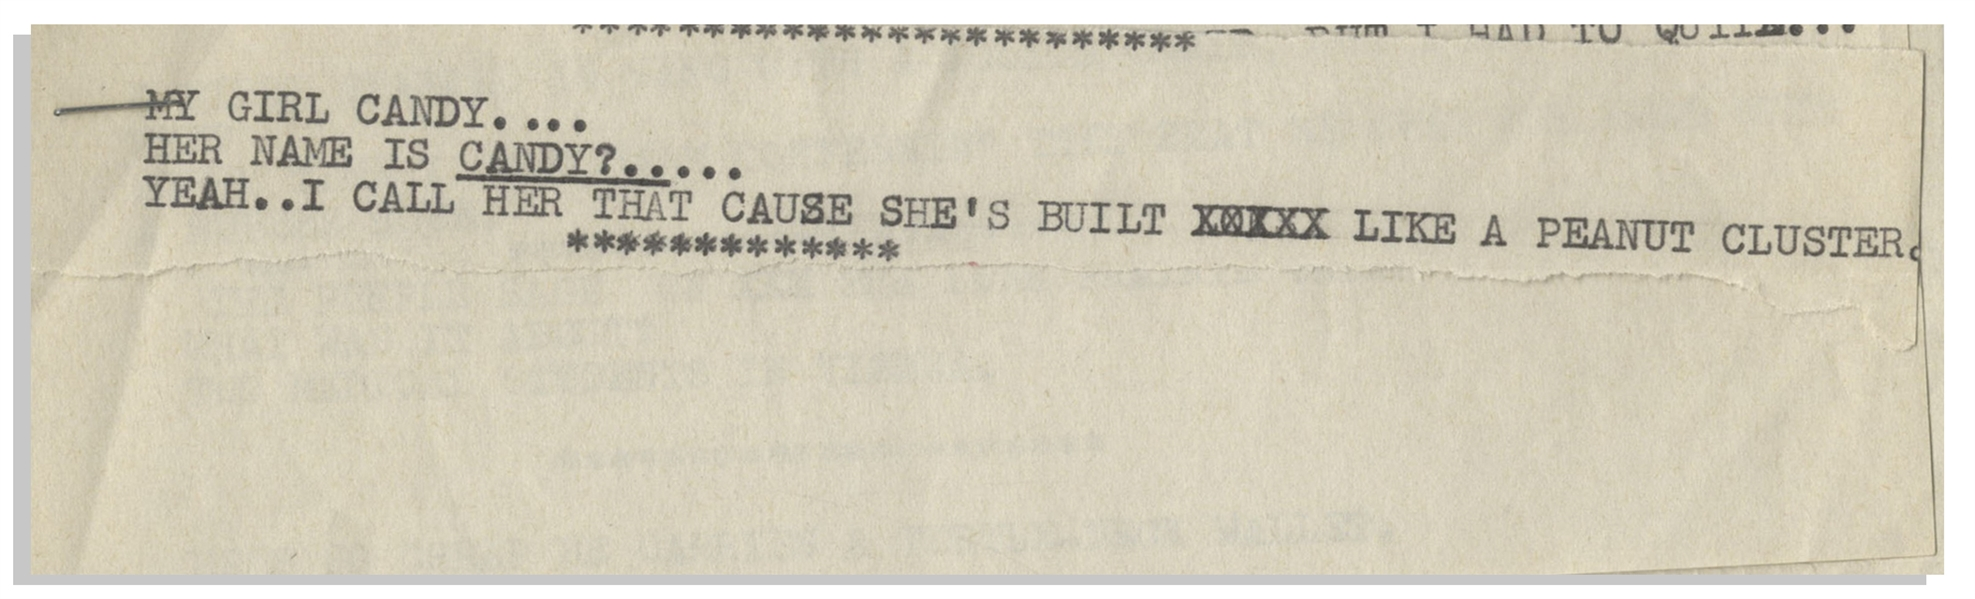 Moe Howard List of Jokes -- On Page of His 7.25'' x 10.5'' Stationery & Another on Partial 7.25'' x 3.75'' Stationery Page -- Rest on 3 Smaller Pieces of Paper, All Stapled Together -- Near Fine